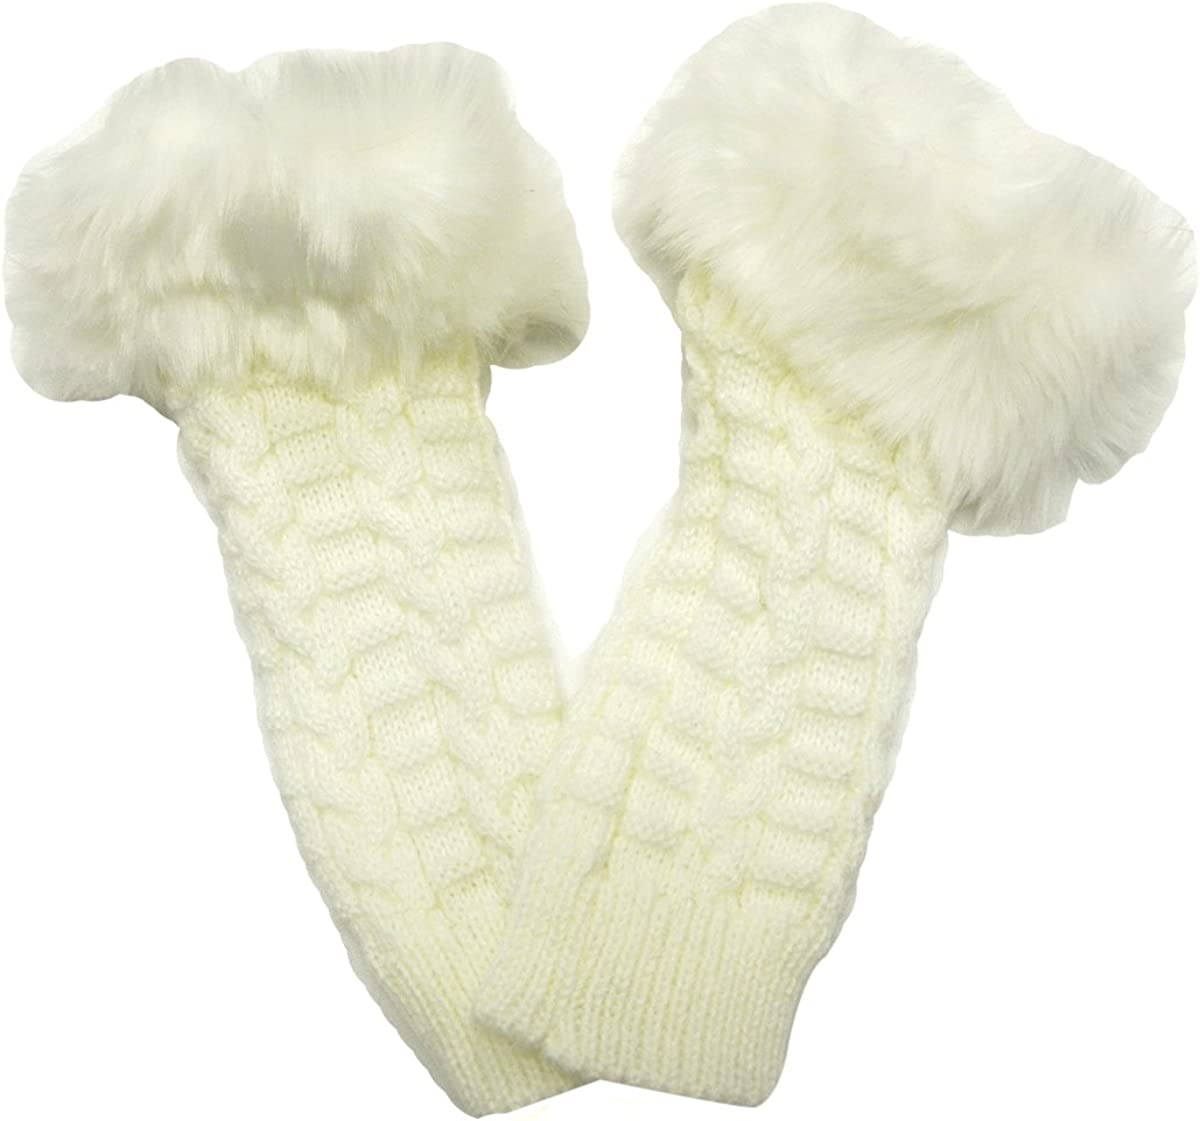 Wrapables Fingerless Gloves with Faux Fur Trim - White